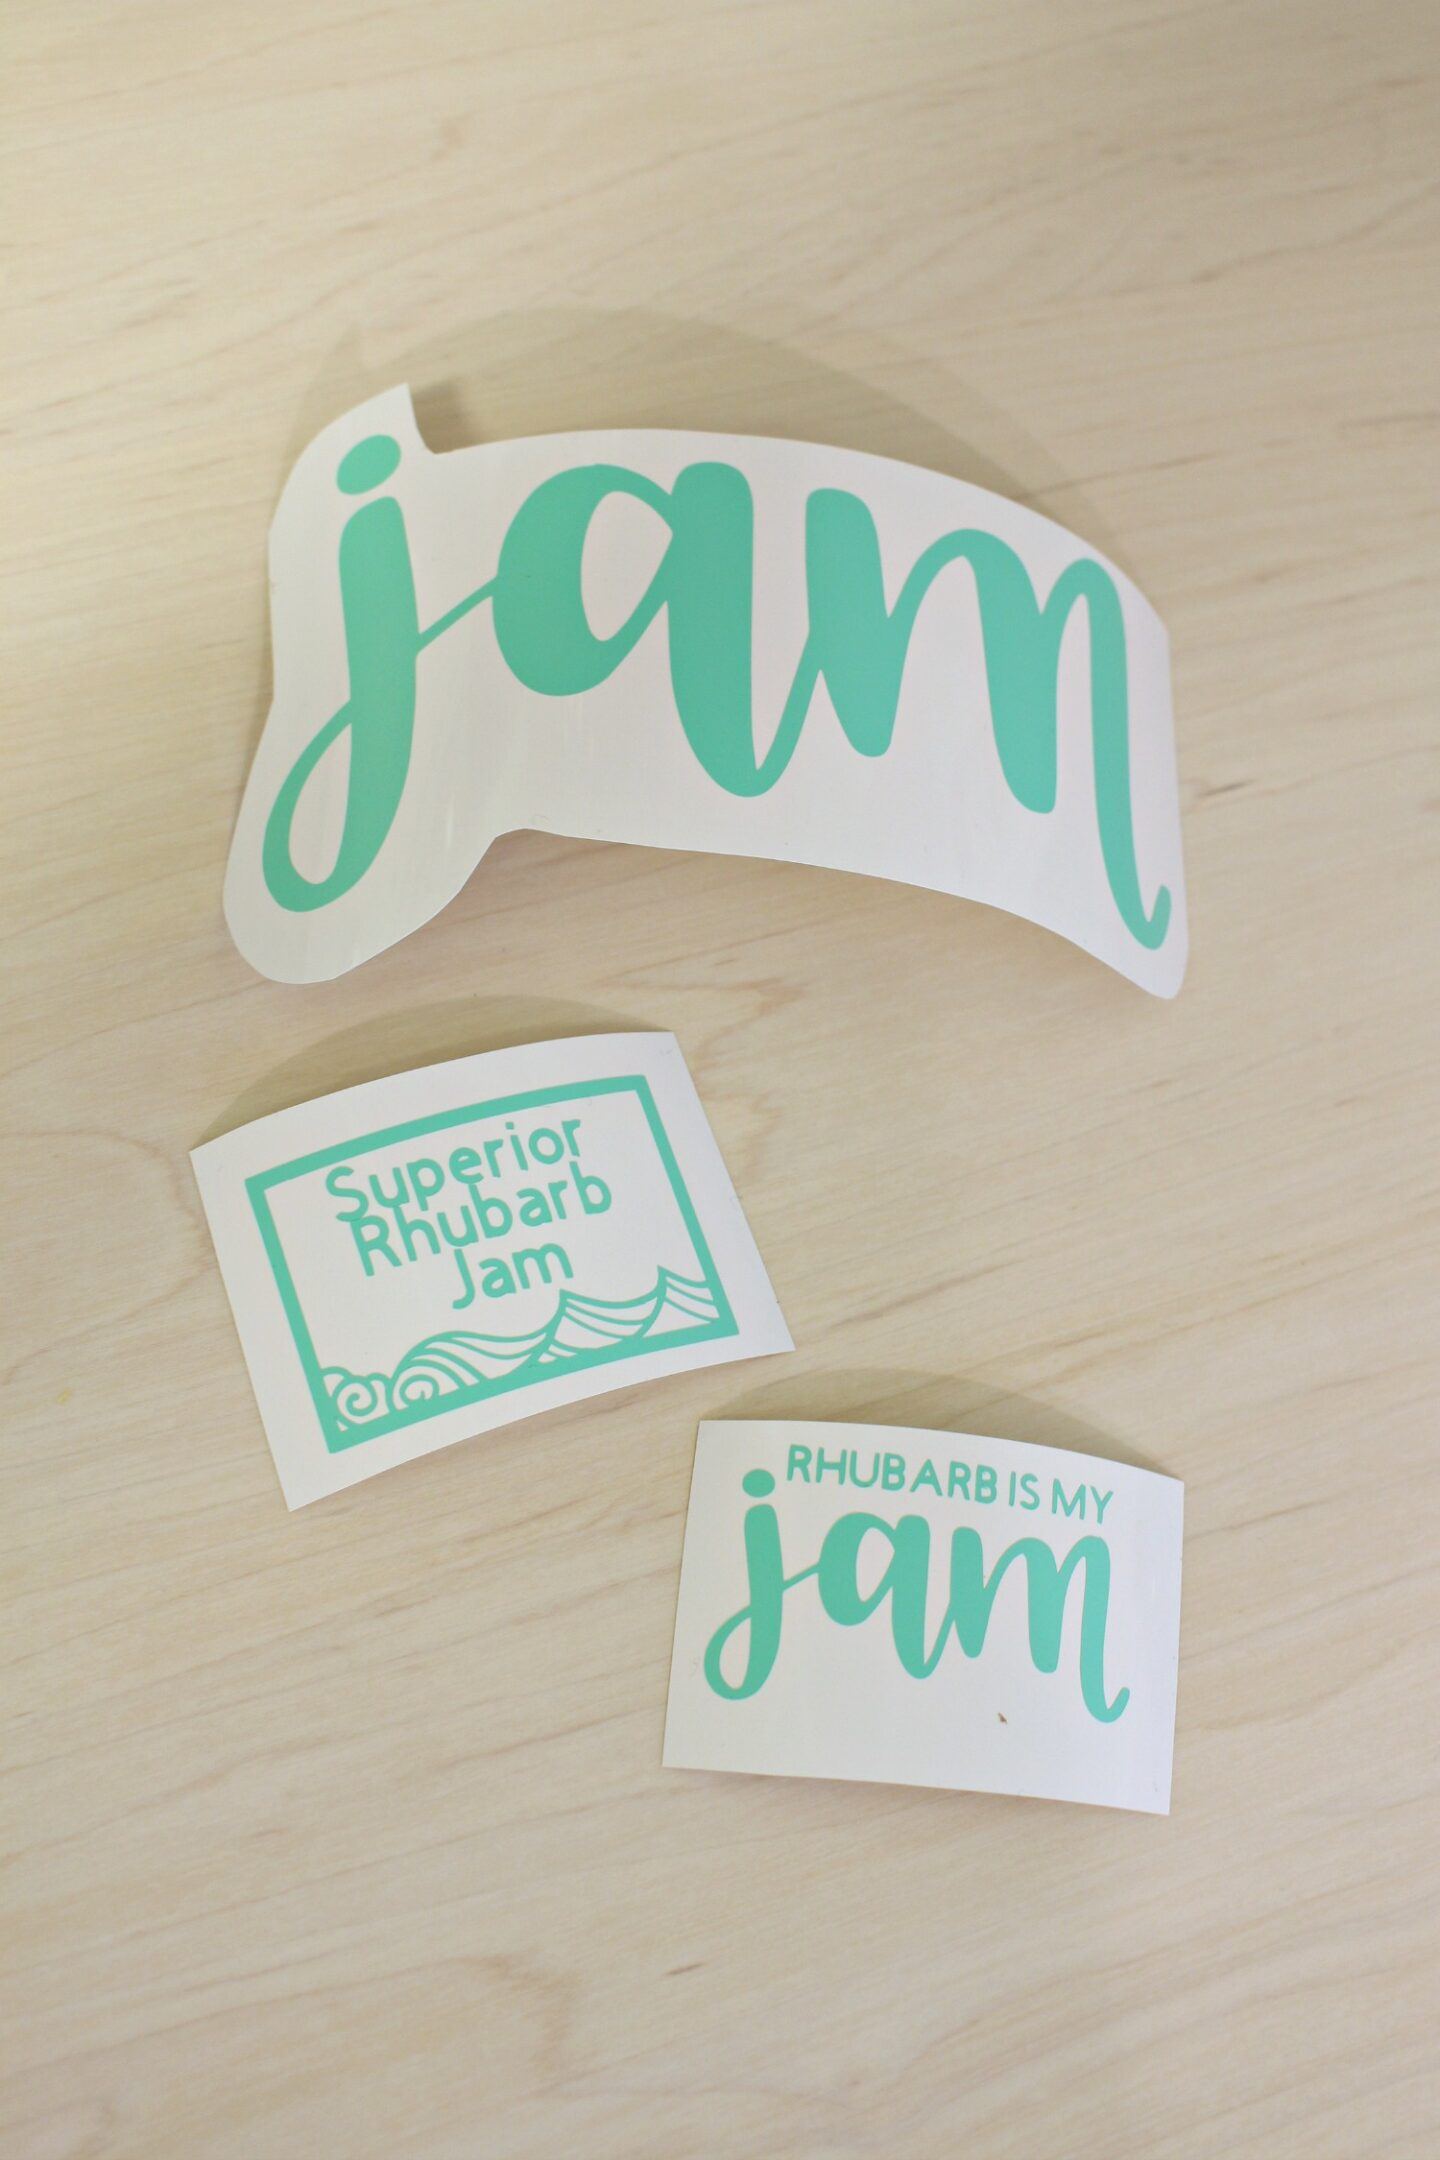 Cricut Jam Labels